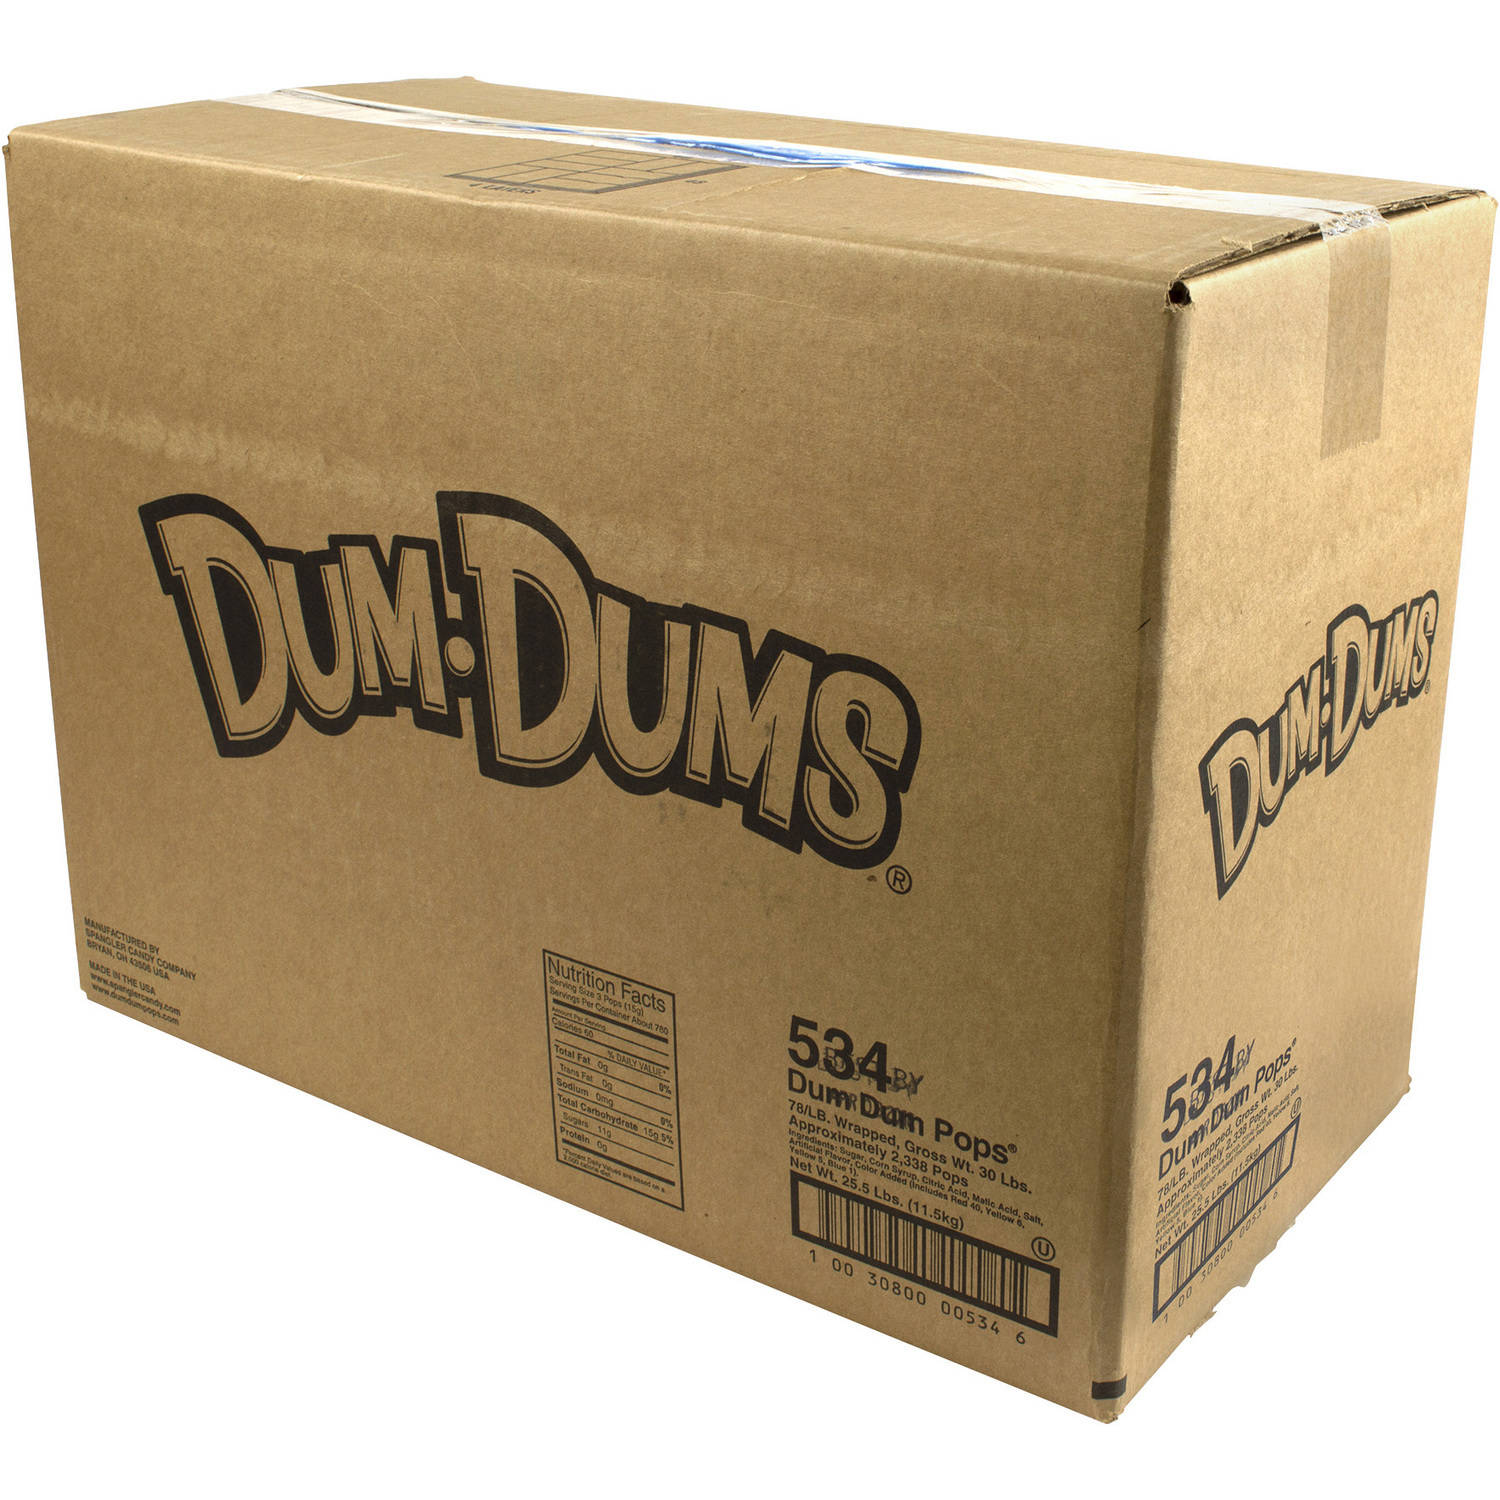 Dum Dum Lollipops Candy, 534 count, 30 lbs by